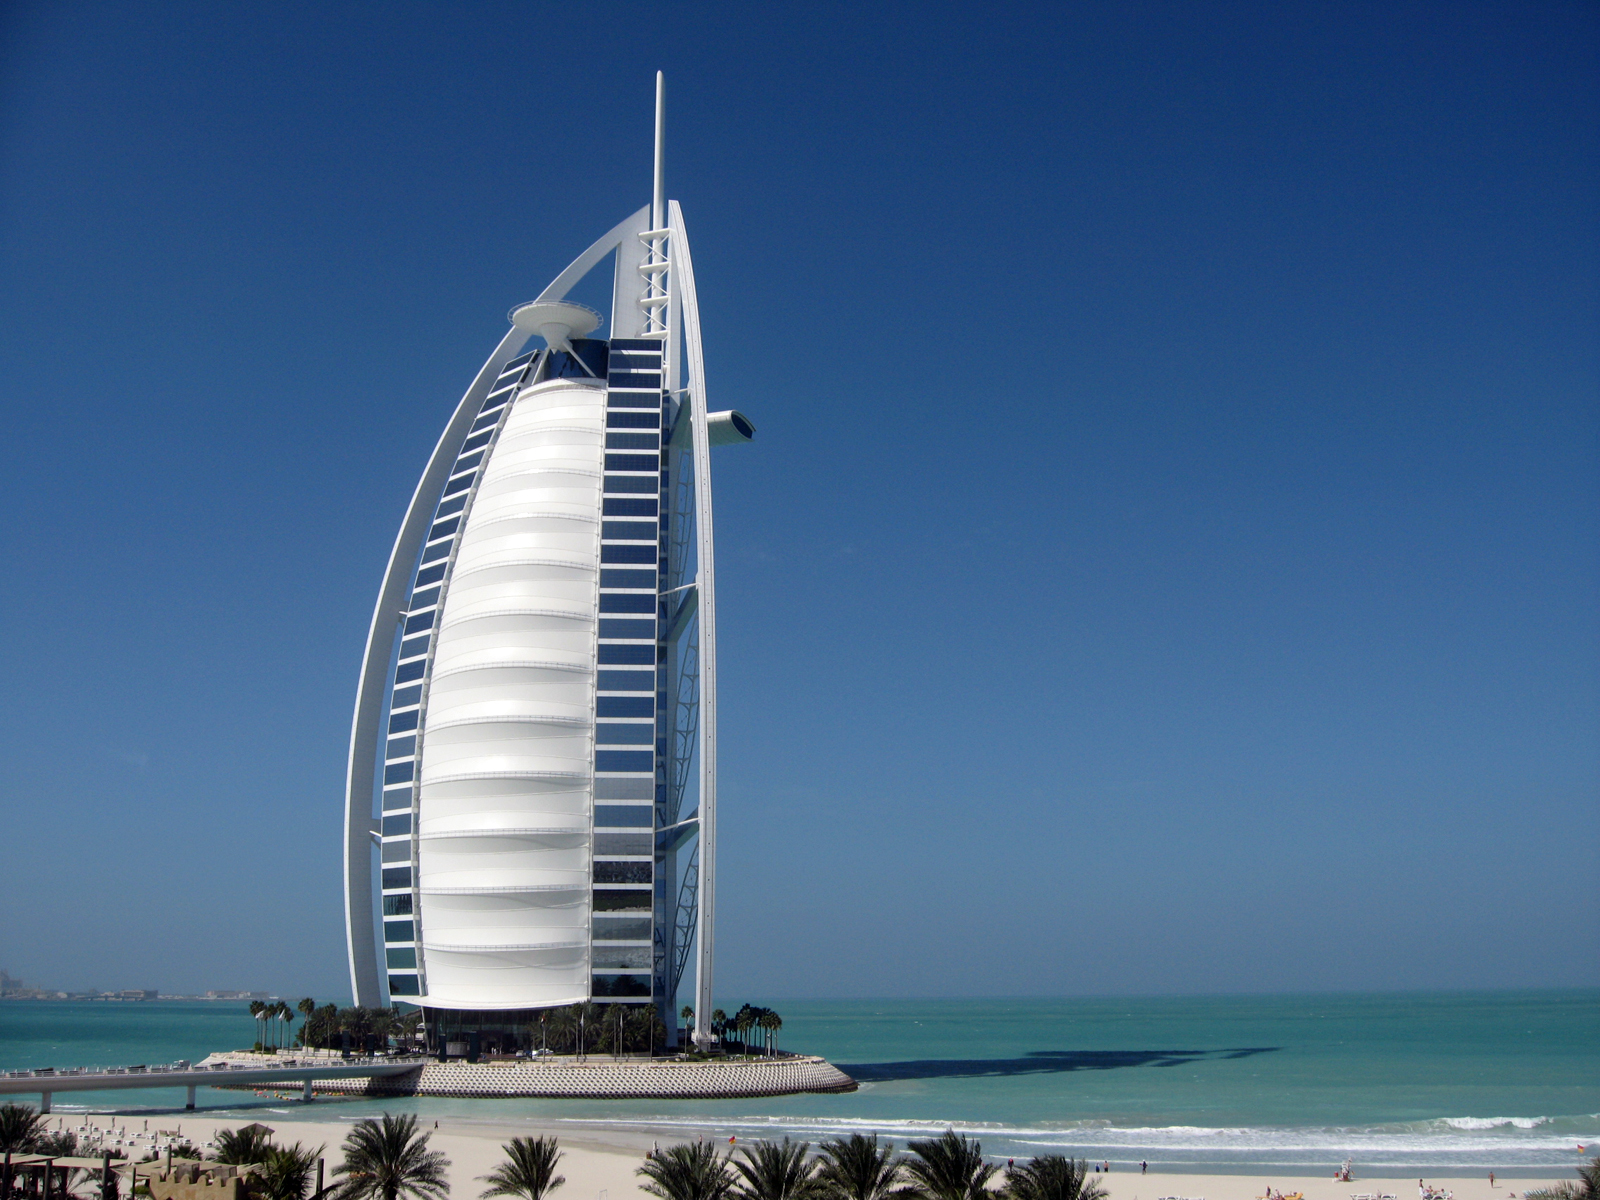 Burj al arab hotel wallpaper hd full hd pictures for Hotel burj al arab